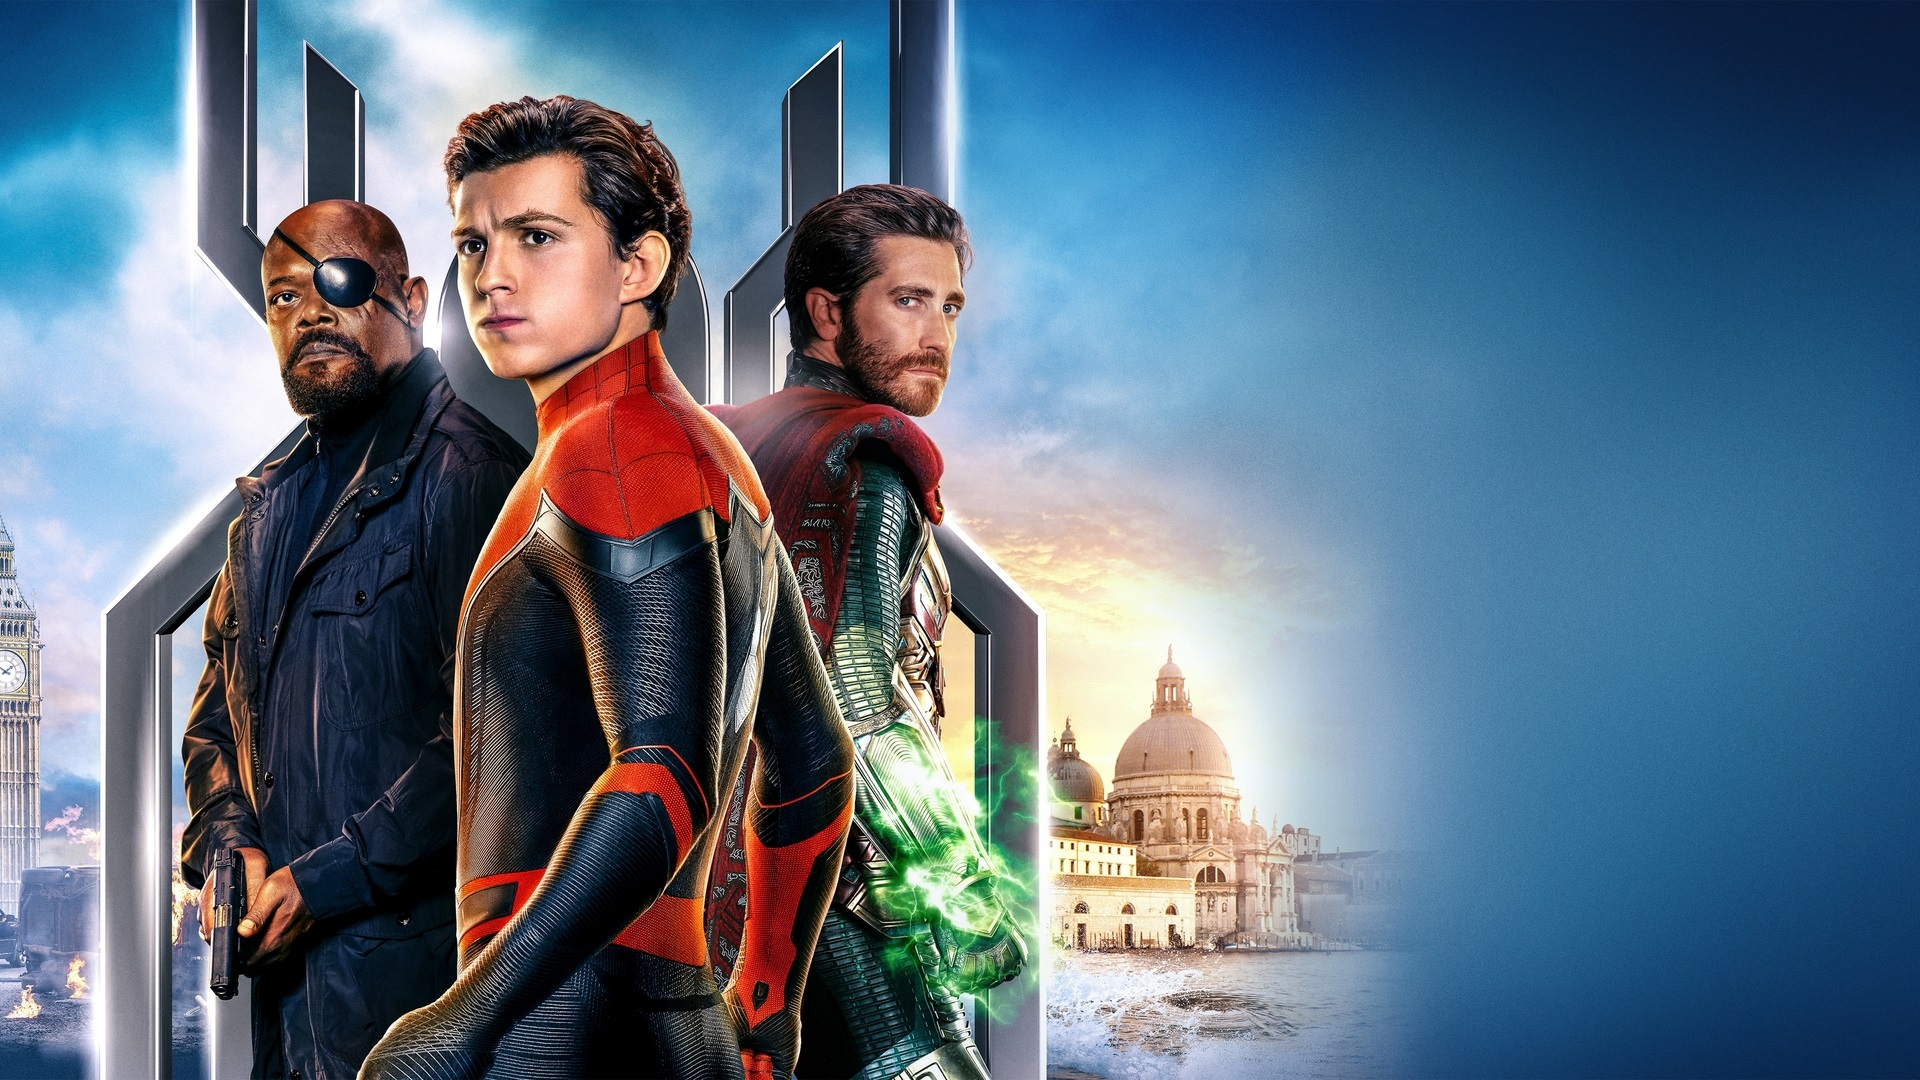 Peter needs a vacation… - Dealing with Peter's desire to be a kid with his friends and with the heartbreaking loss endured in Avengers: Endgame, this is a satisfying follow-up to 2017's Homecoming.